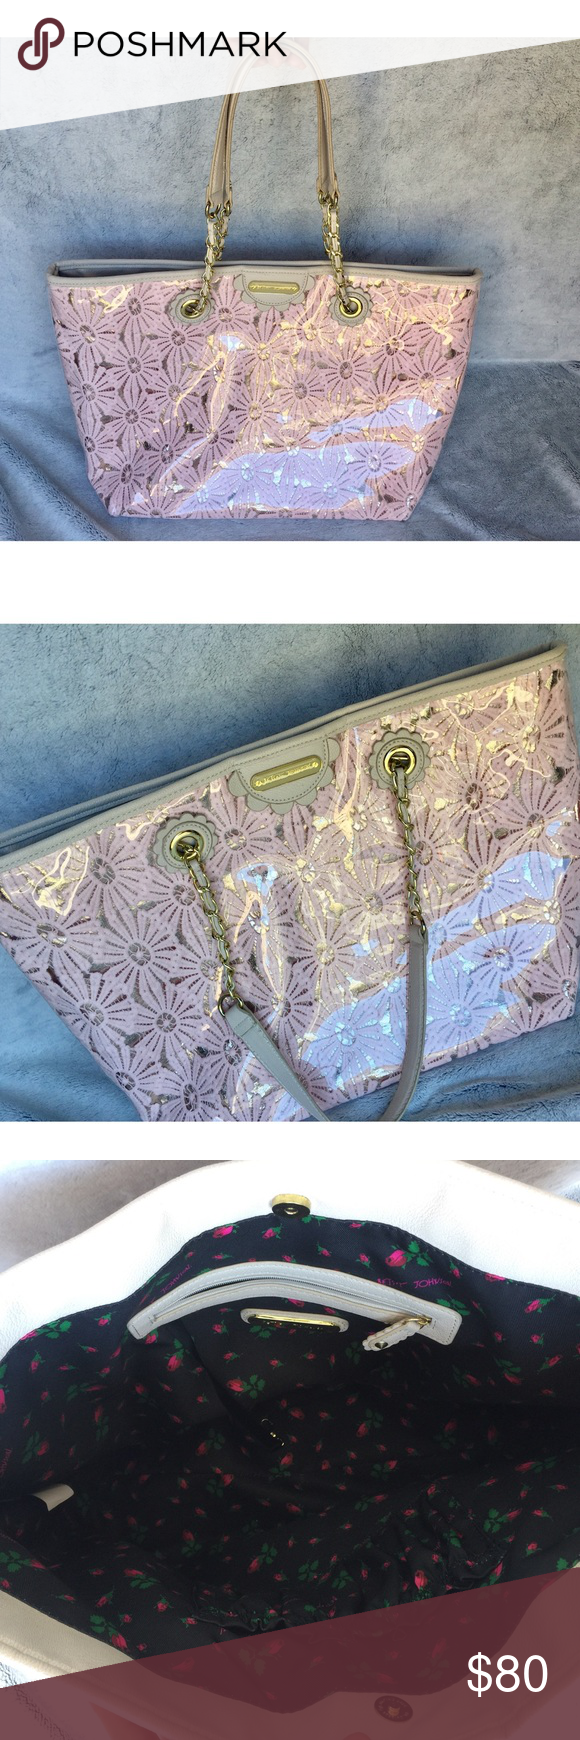 Stunning Betsey Large Pink & Gold Bag Absolutely gorgeous large bag. Gold with pink lace flowers, covered with plastic/pvc overtop. Ivory & gold chain handle straps. Cute cherry cotton lining.   ✔️If you'd like to MAKE AN OFFER please do so through the offer button ONLY. I won't negotiate prices in the comments.  ✔️All sale items, items $15 and under, & clearance items are firm unless BUNDLED.  ❌No trades, PayPal, Holds 📷Instagram: @lovelionessie Betsey Johnson Bags Totes